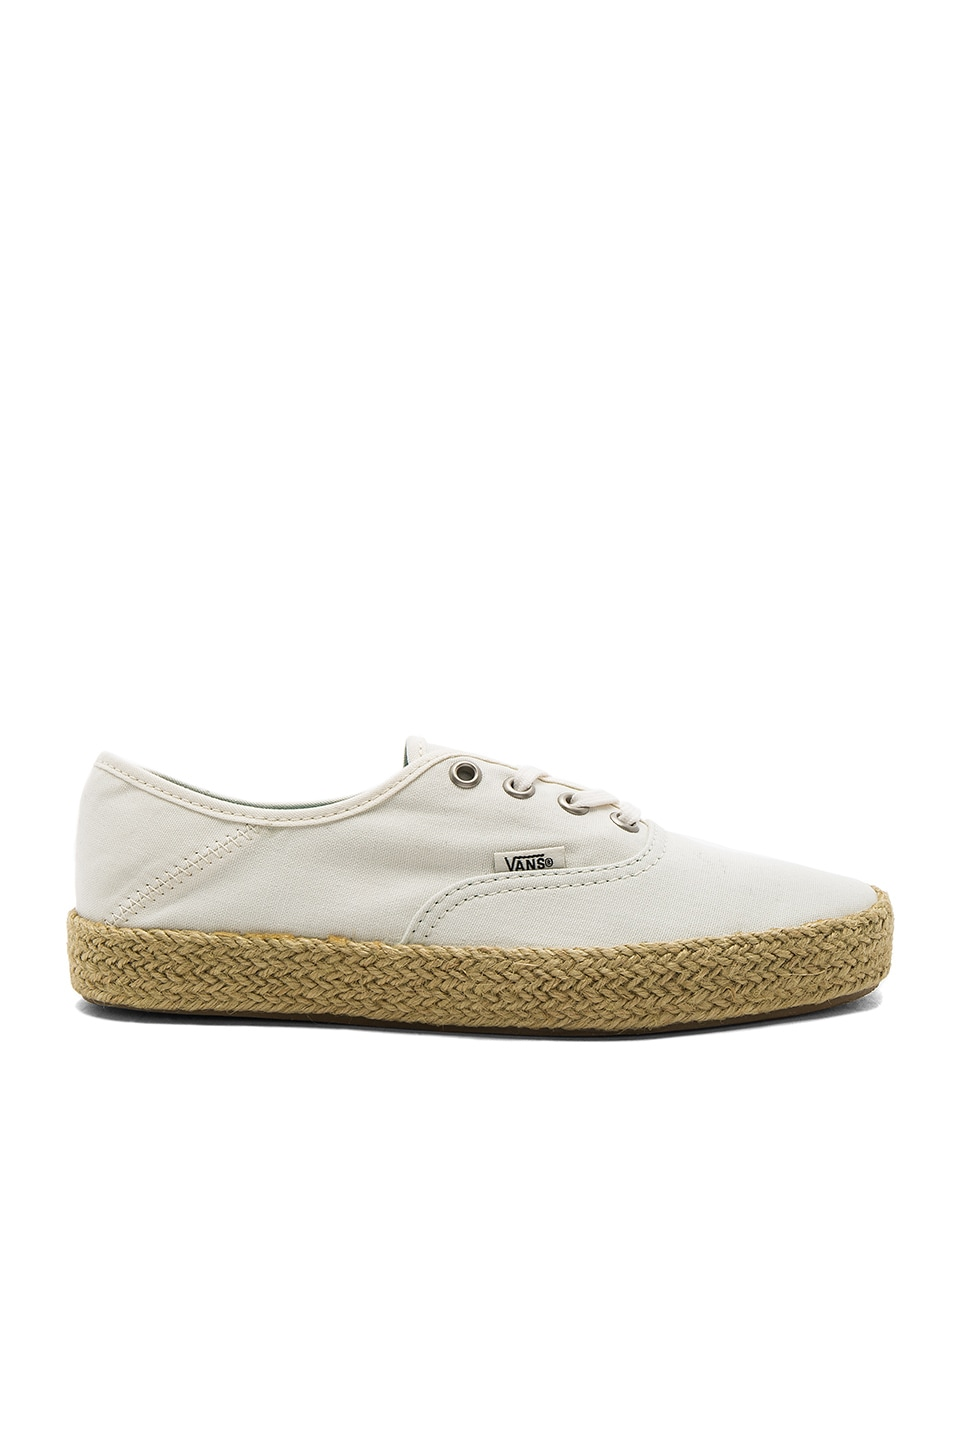 Vans Authentic Espadrille in Marshmallow